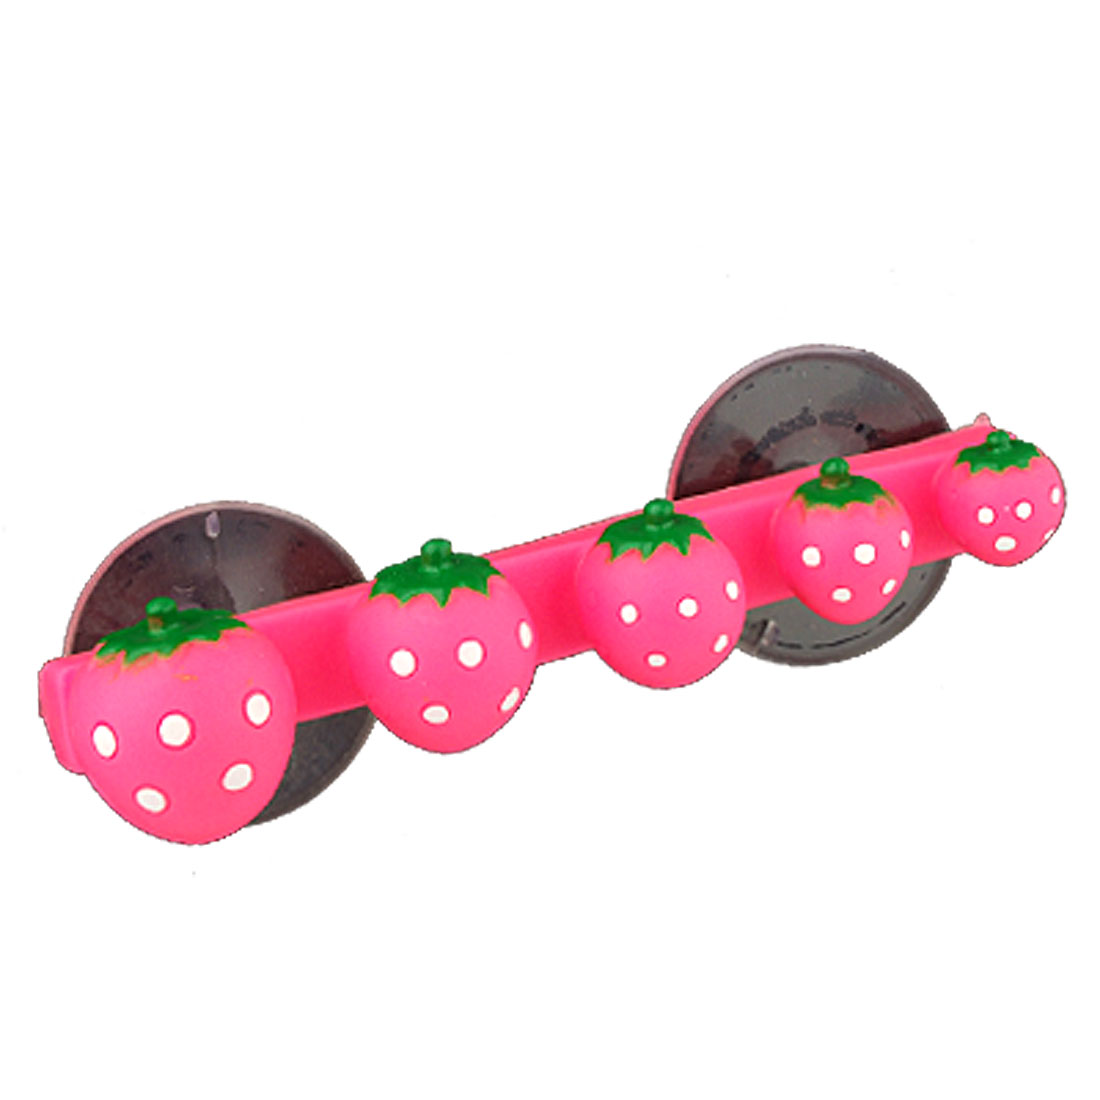 Strewberry Shaped Design Plastic Toothbrush Holder Rack With Suction